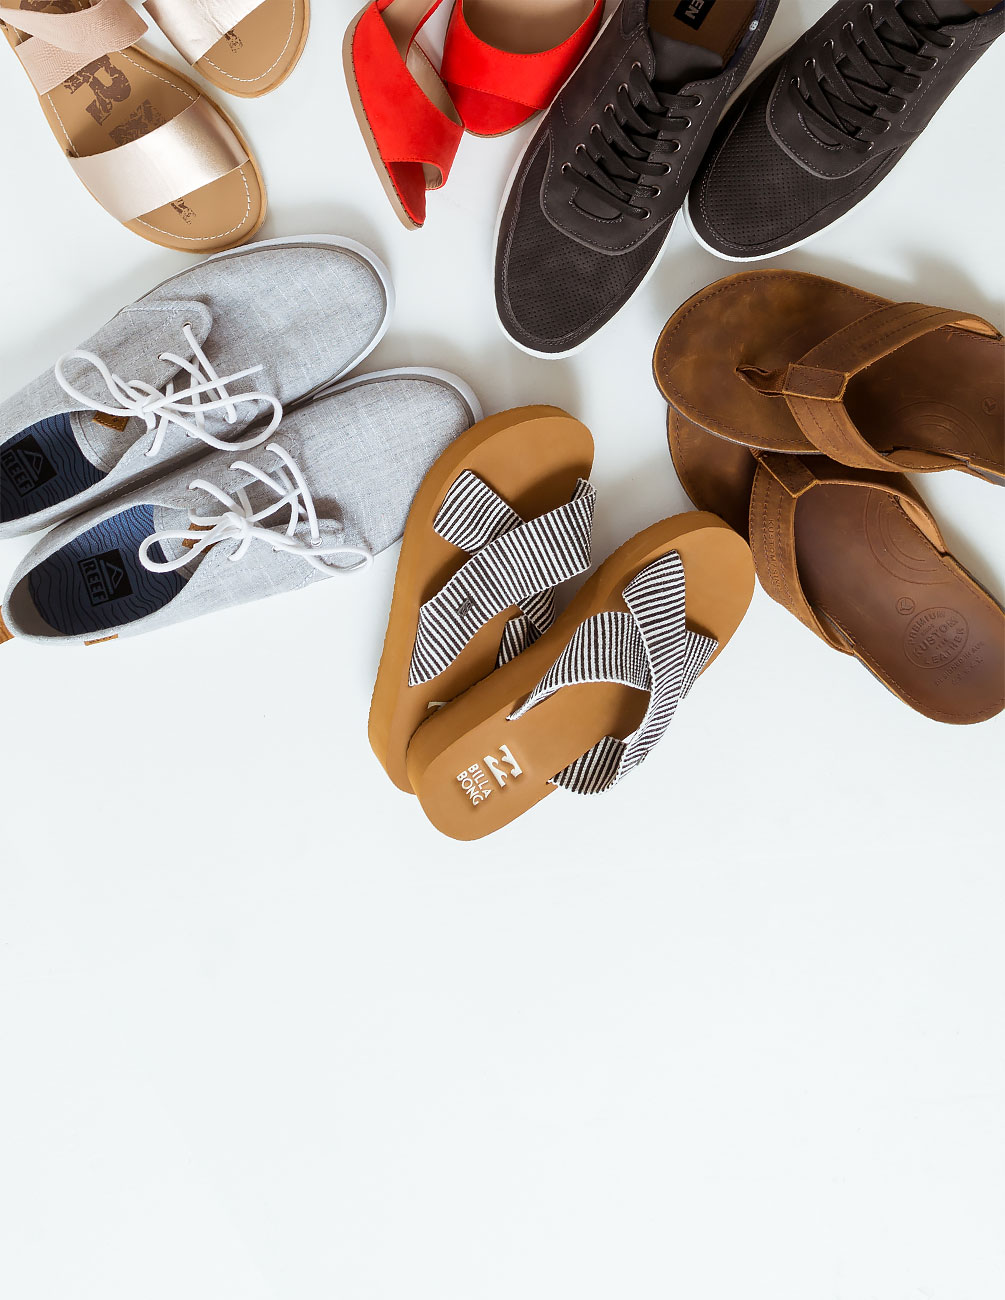 b62e6a262e New styles of summer shoes from Buckle. SHOP WOMEN